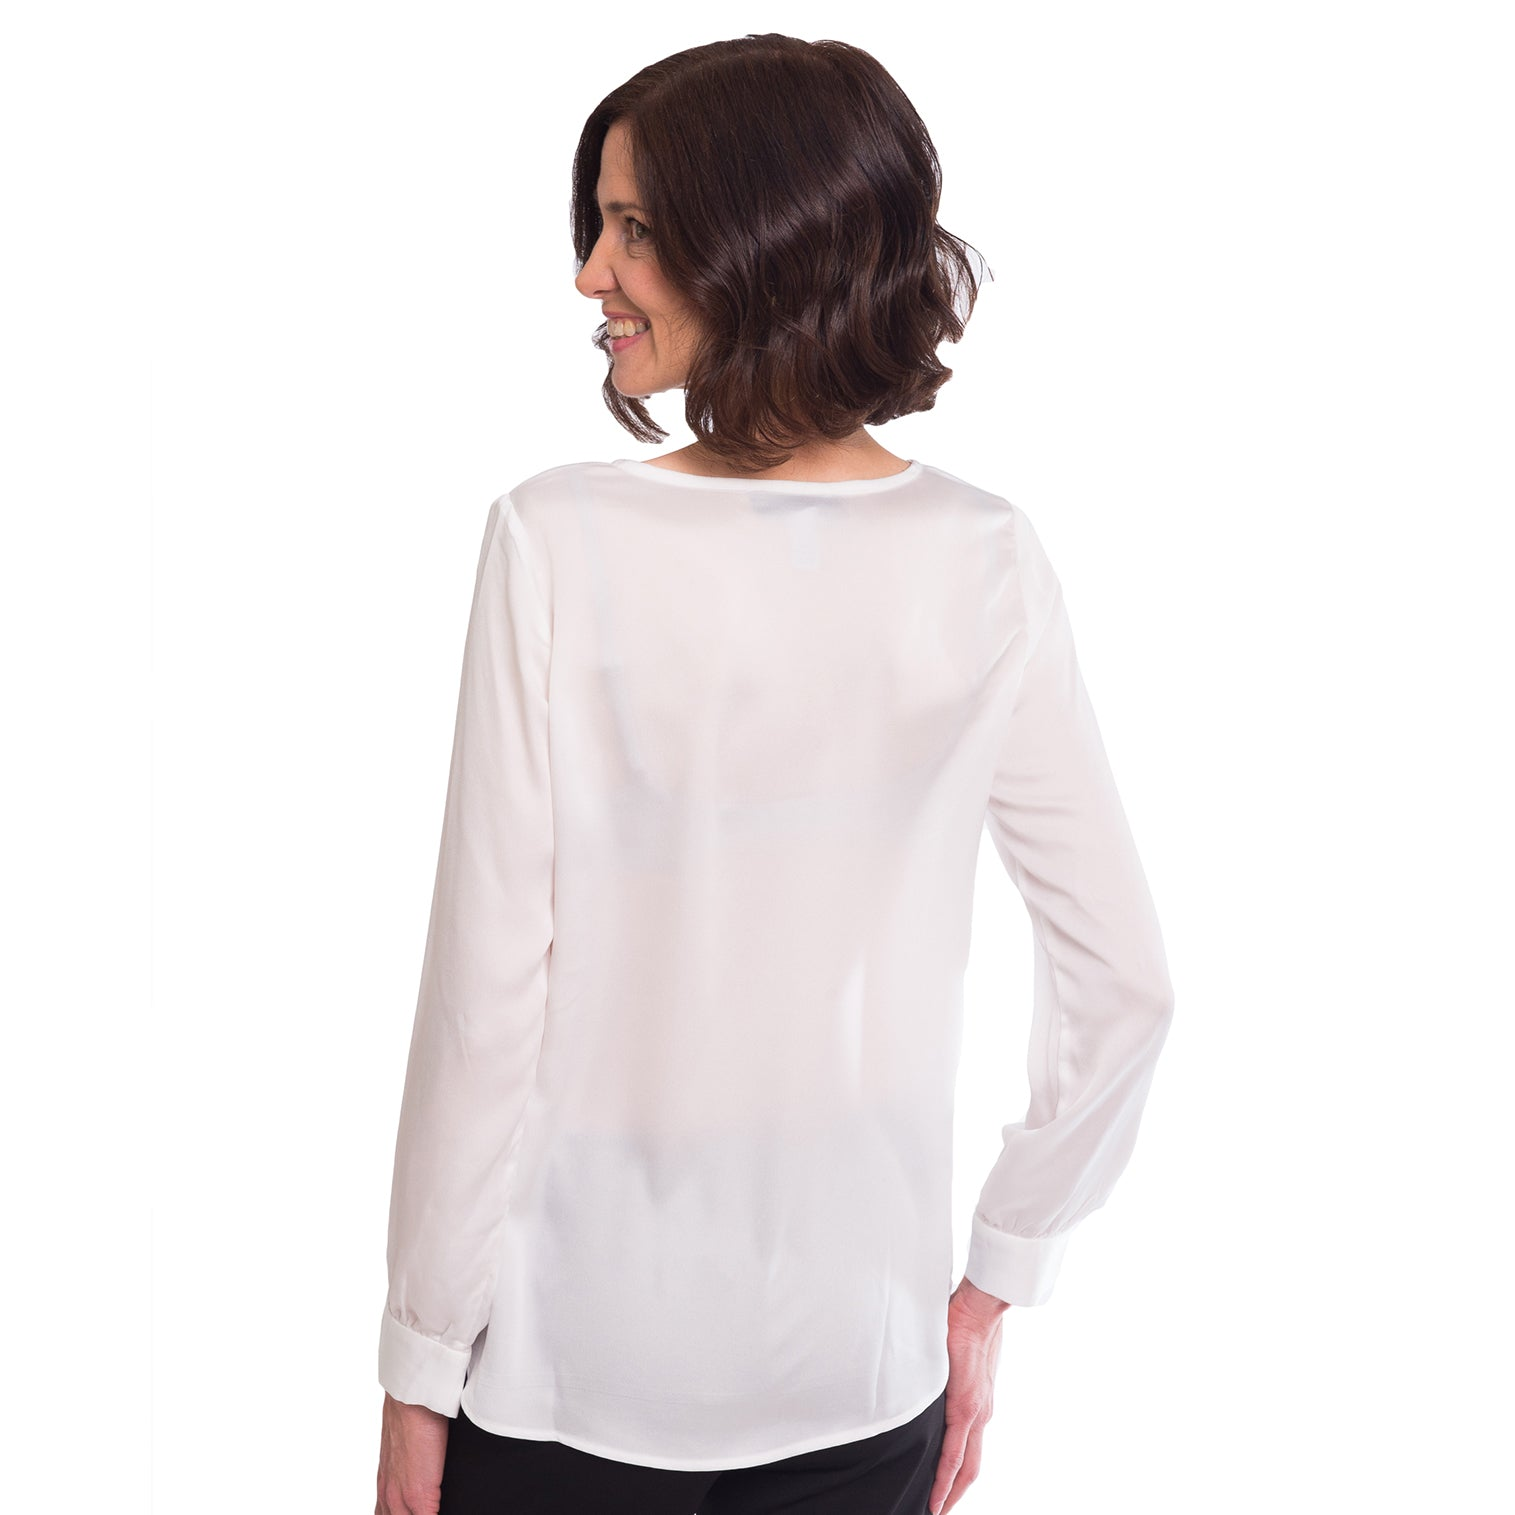 Haynes V-Neck Long Sleeve Blouse in White - Elizabeth Ackerman New York